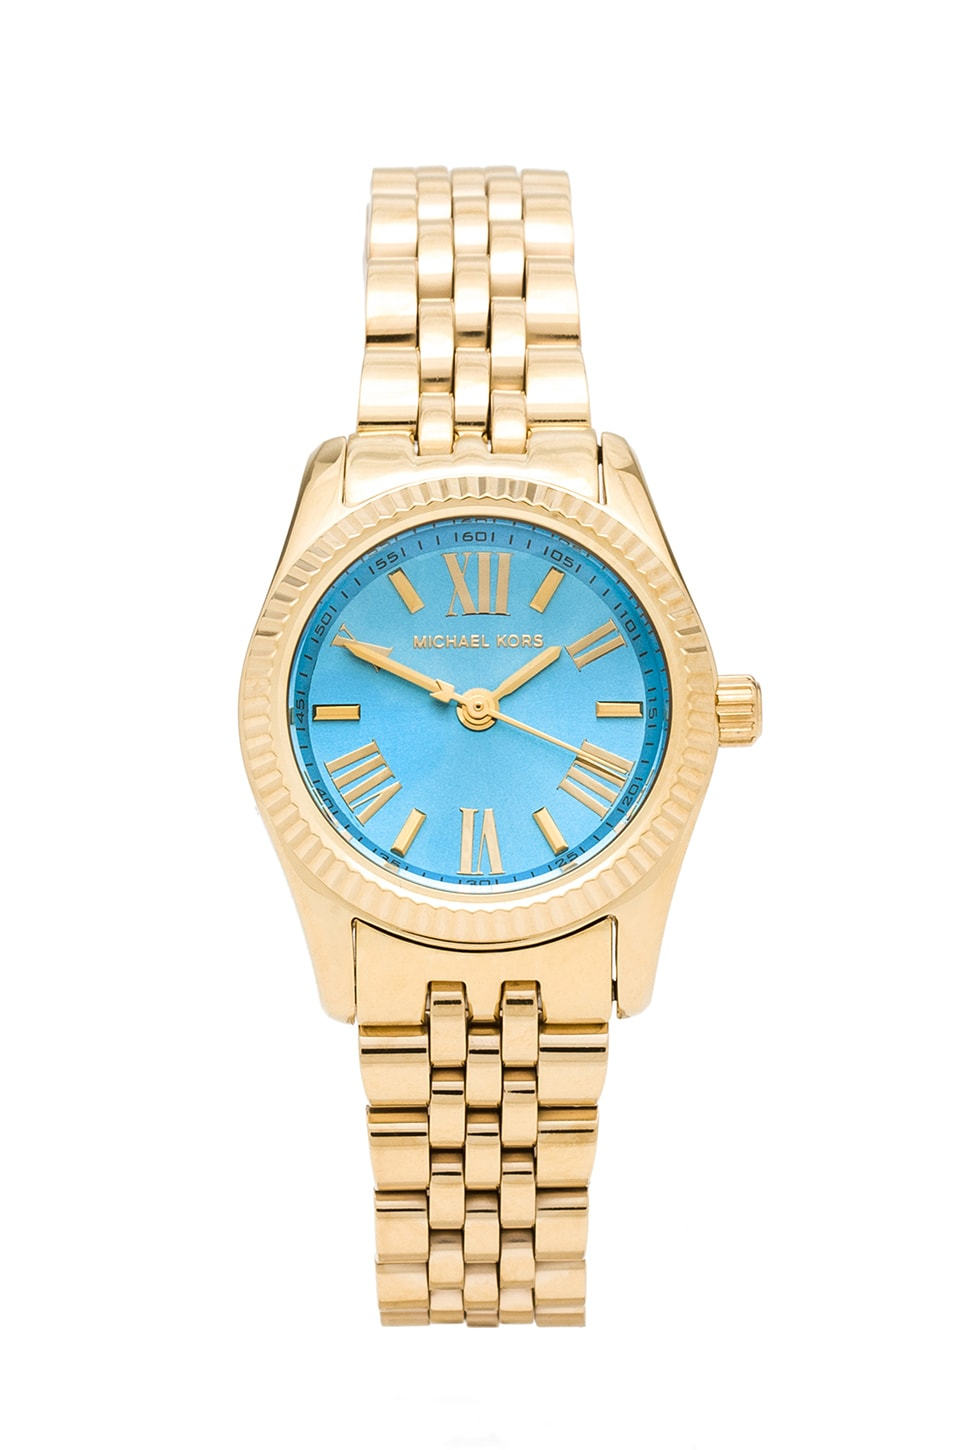 Michael Kors Petite Lexington Watch in Gold